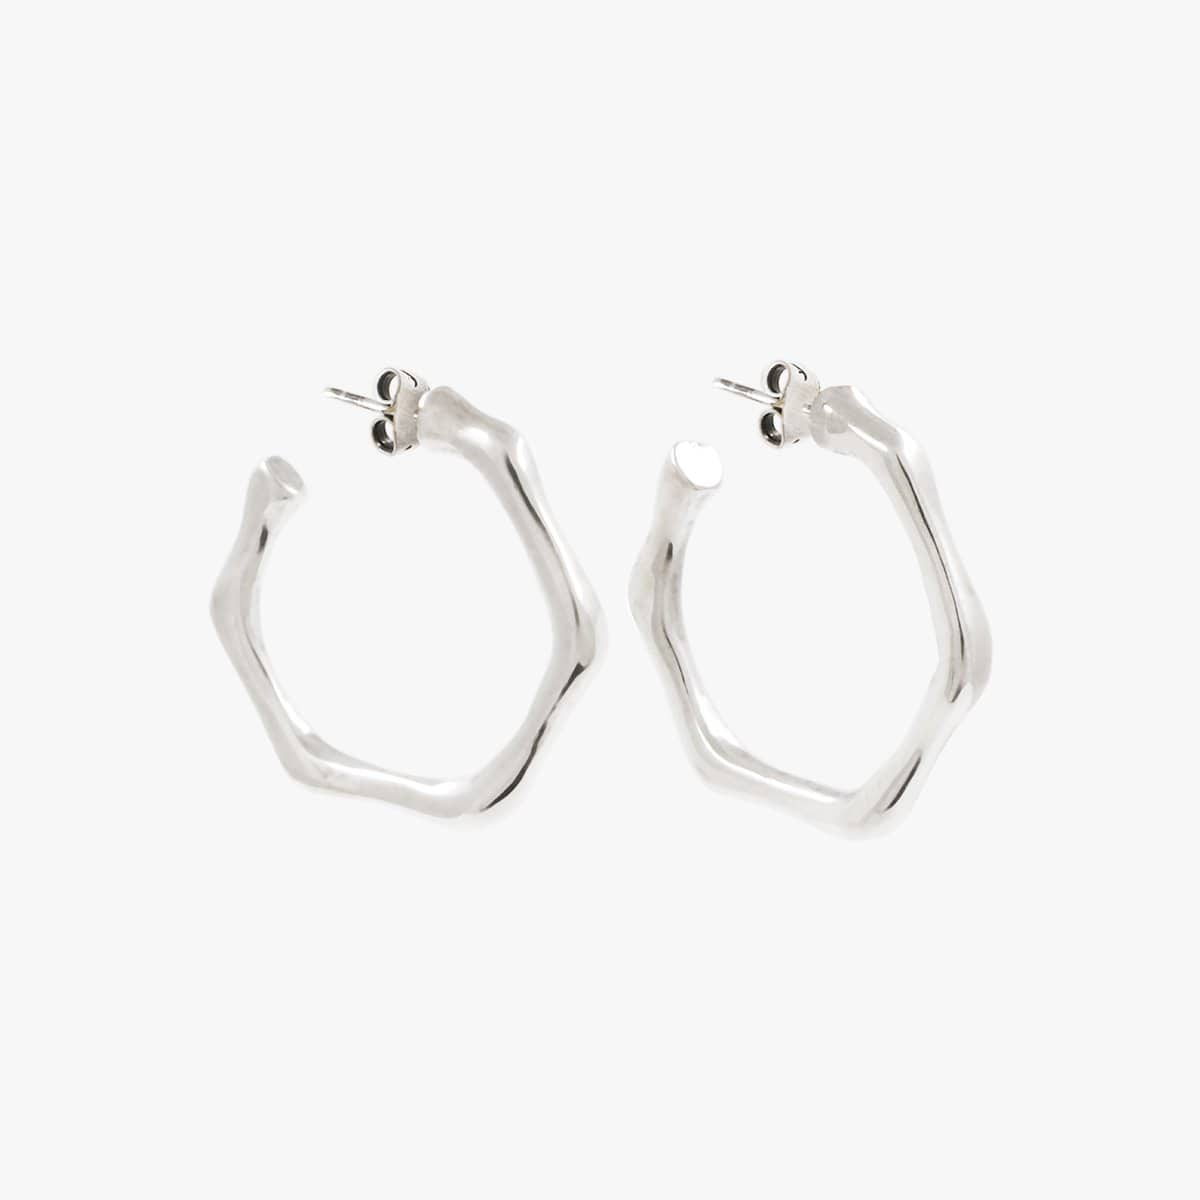 Sterling Silver Plated Earrings - E0060MET-CXC-Renee Taylor Gallery